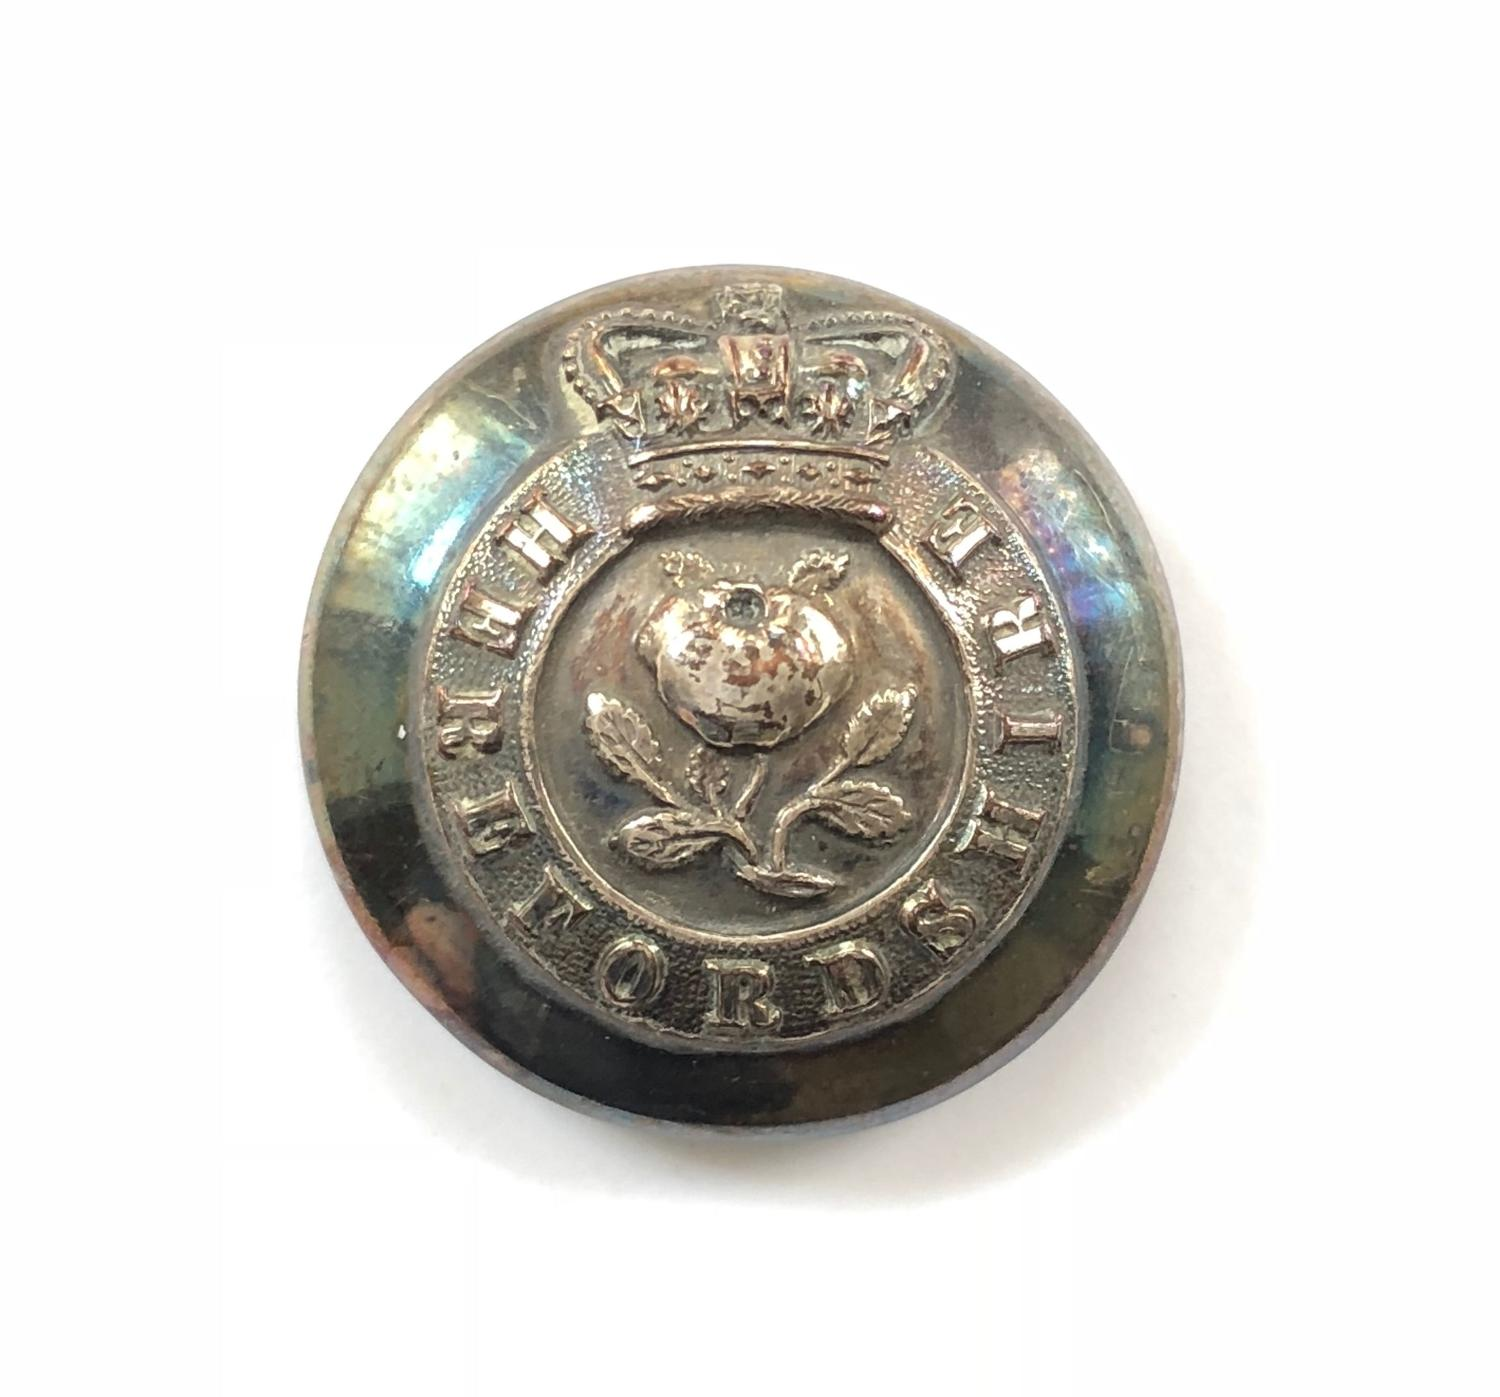 Hereford Militia Officer's silvered closed-back coatee button